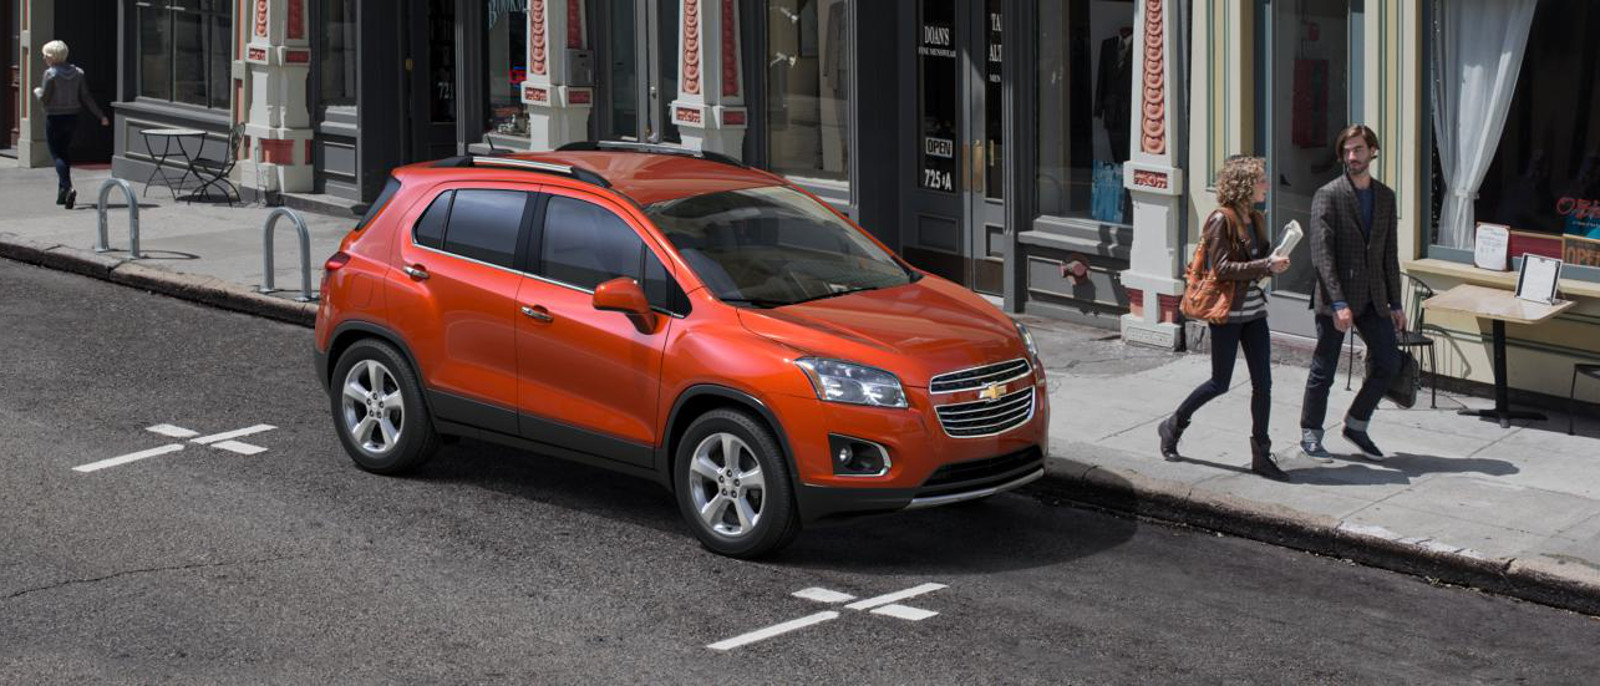 2015 Chevrolet Trax Exterior Front SIde View